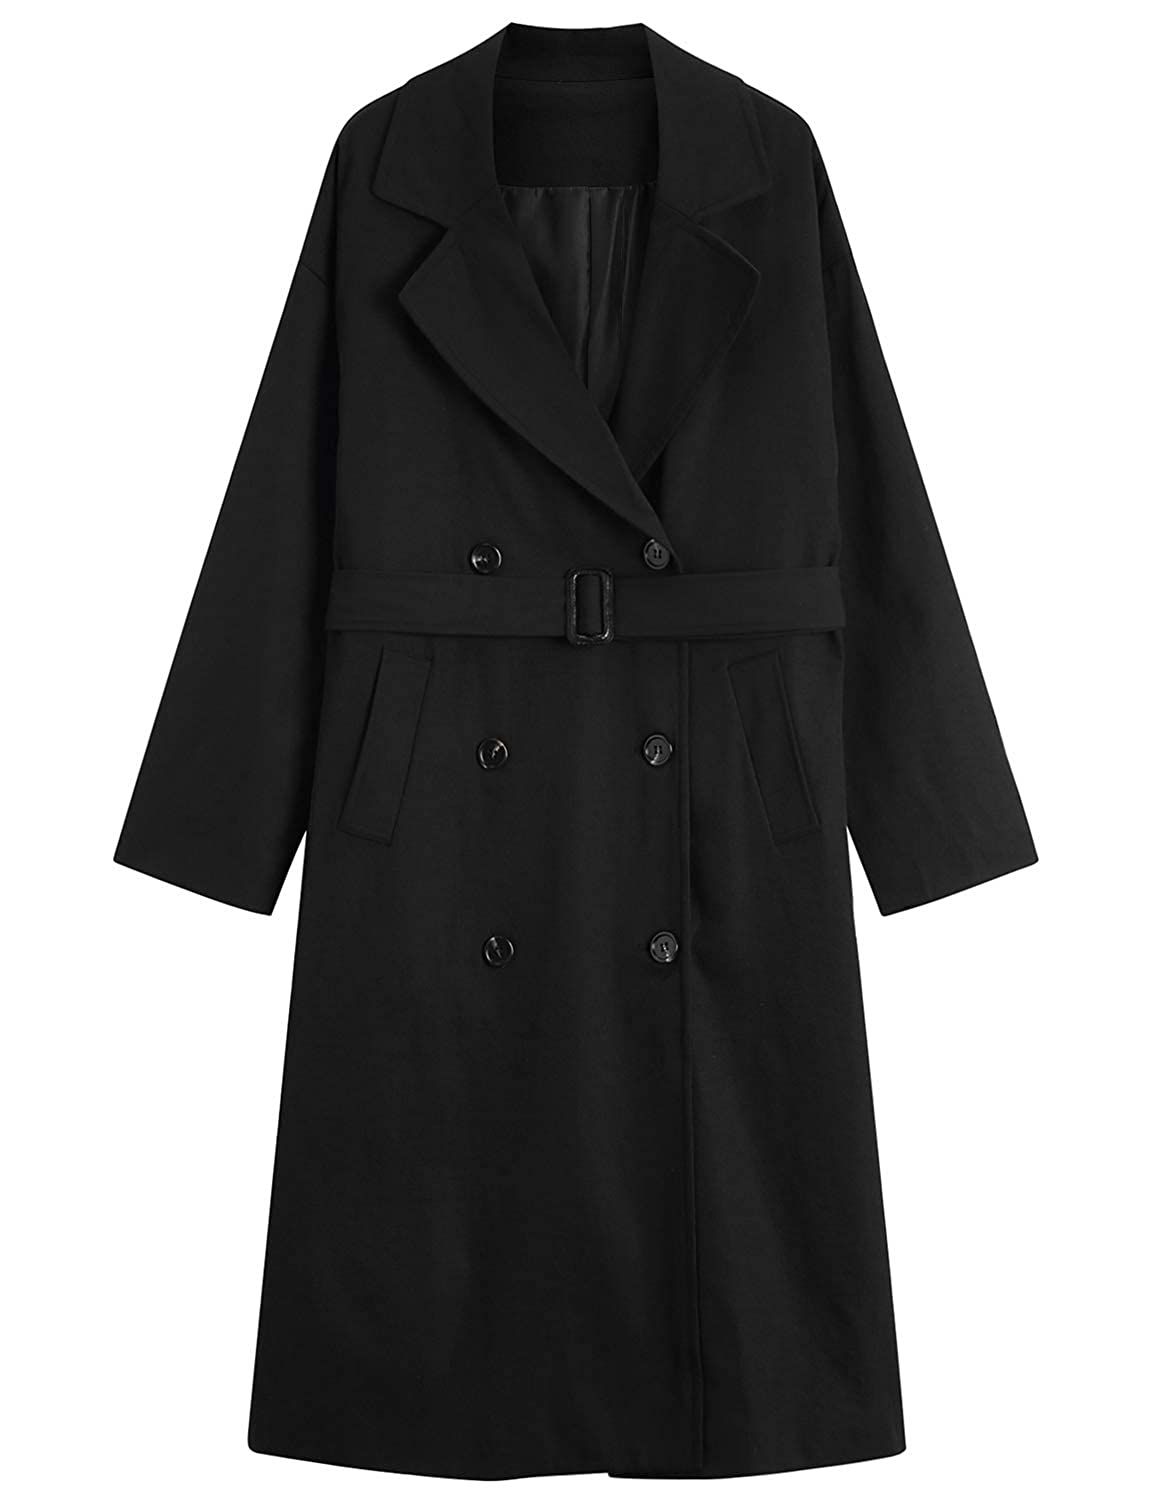 1920s Coats, Furs, Jackets and Capes History MOCRIS Trench Coats for Women Double-Breasted Mid-Length Overcoat Windbreaker with Belt Windbreaker $39.99 AT vintagedancer.com